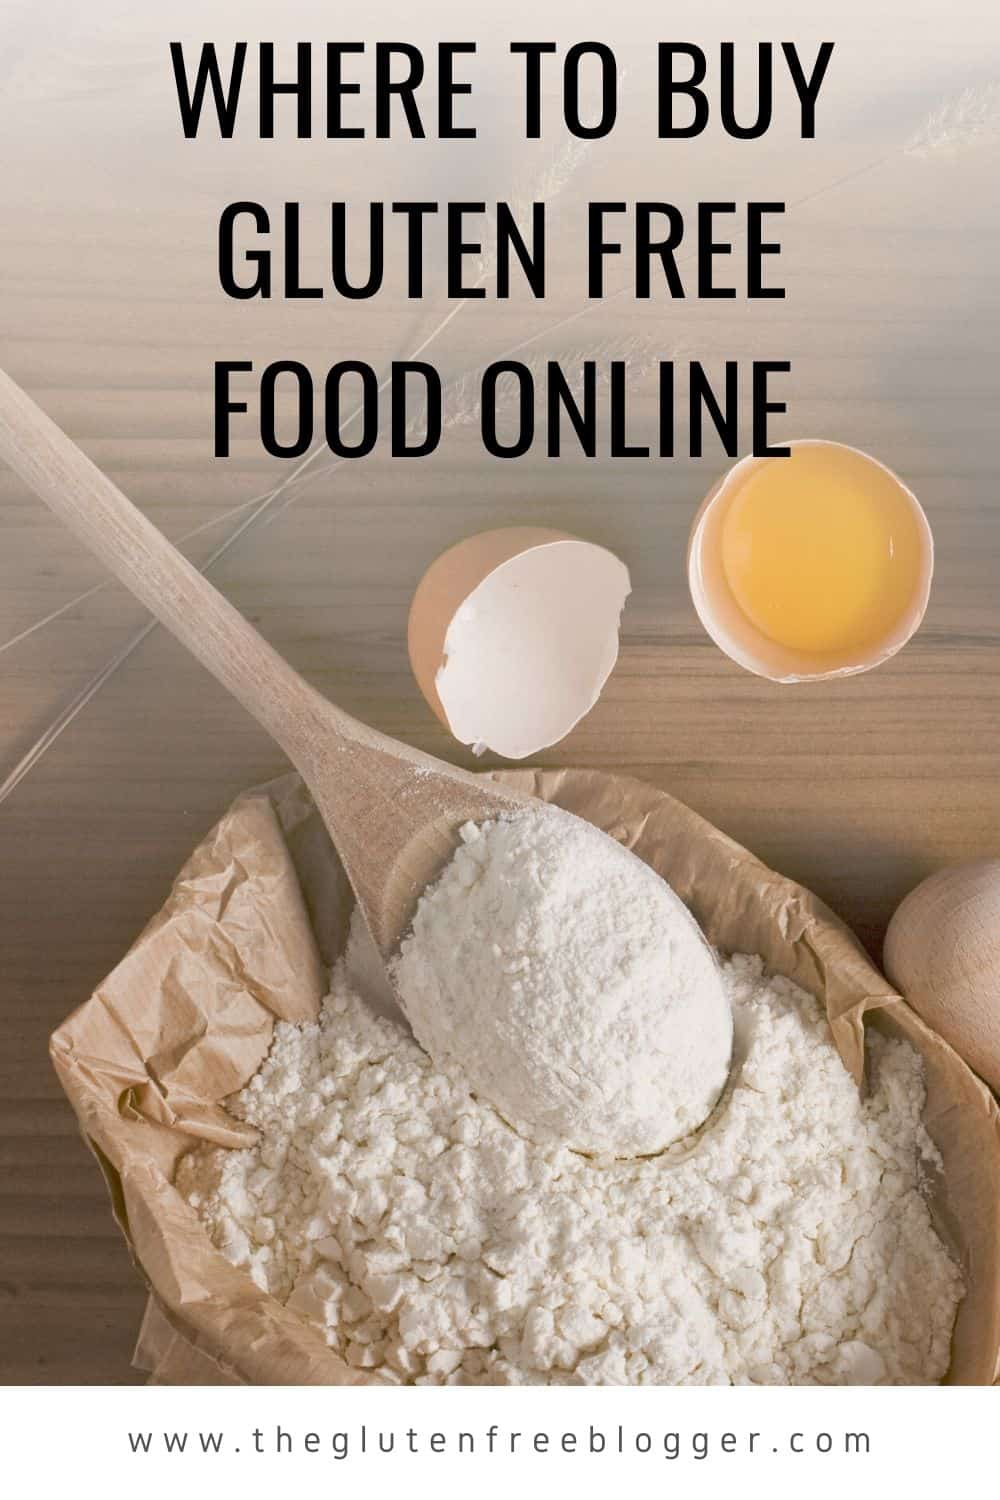 Where can you buy gluten free food online in the UK? - The ...